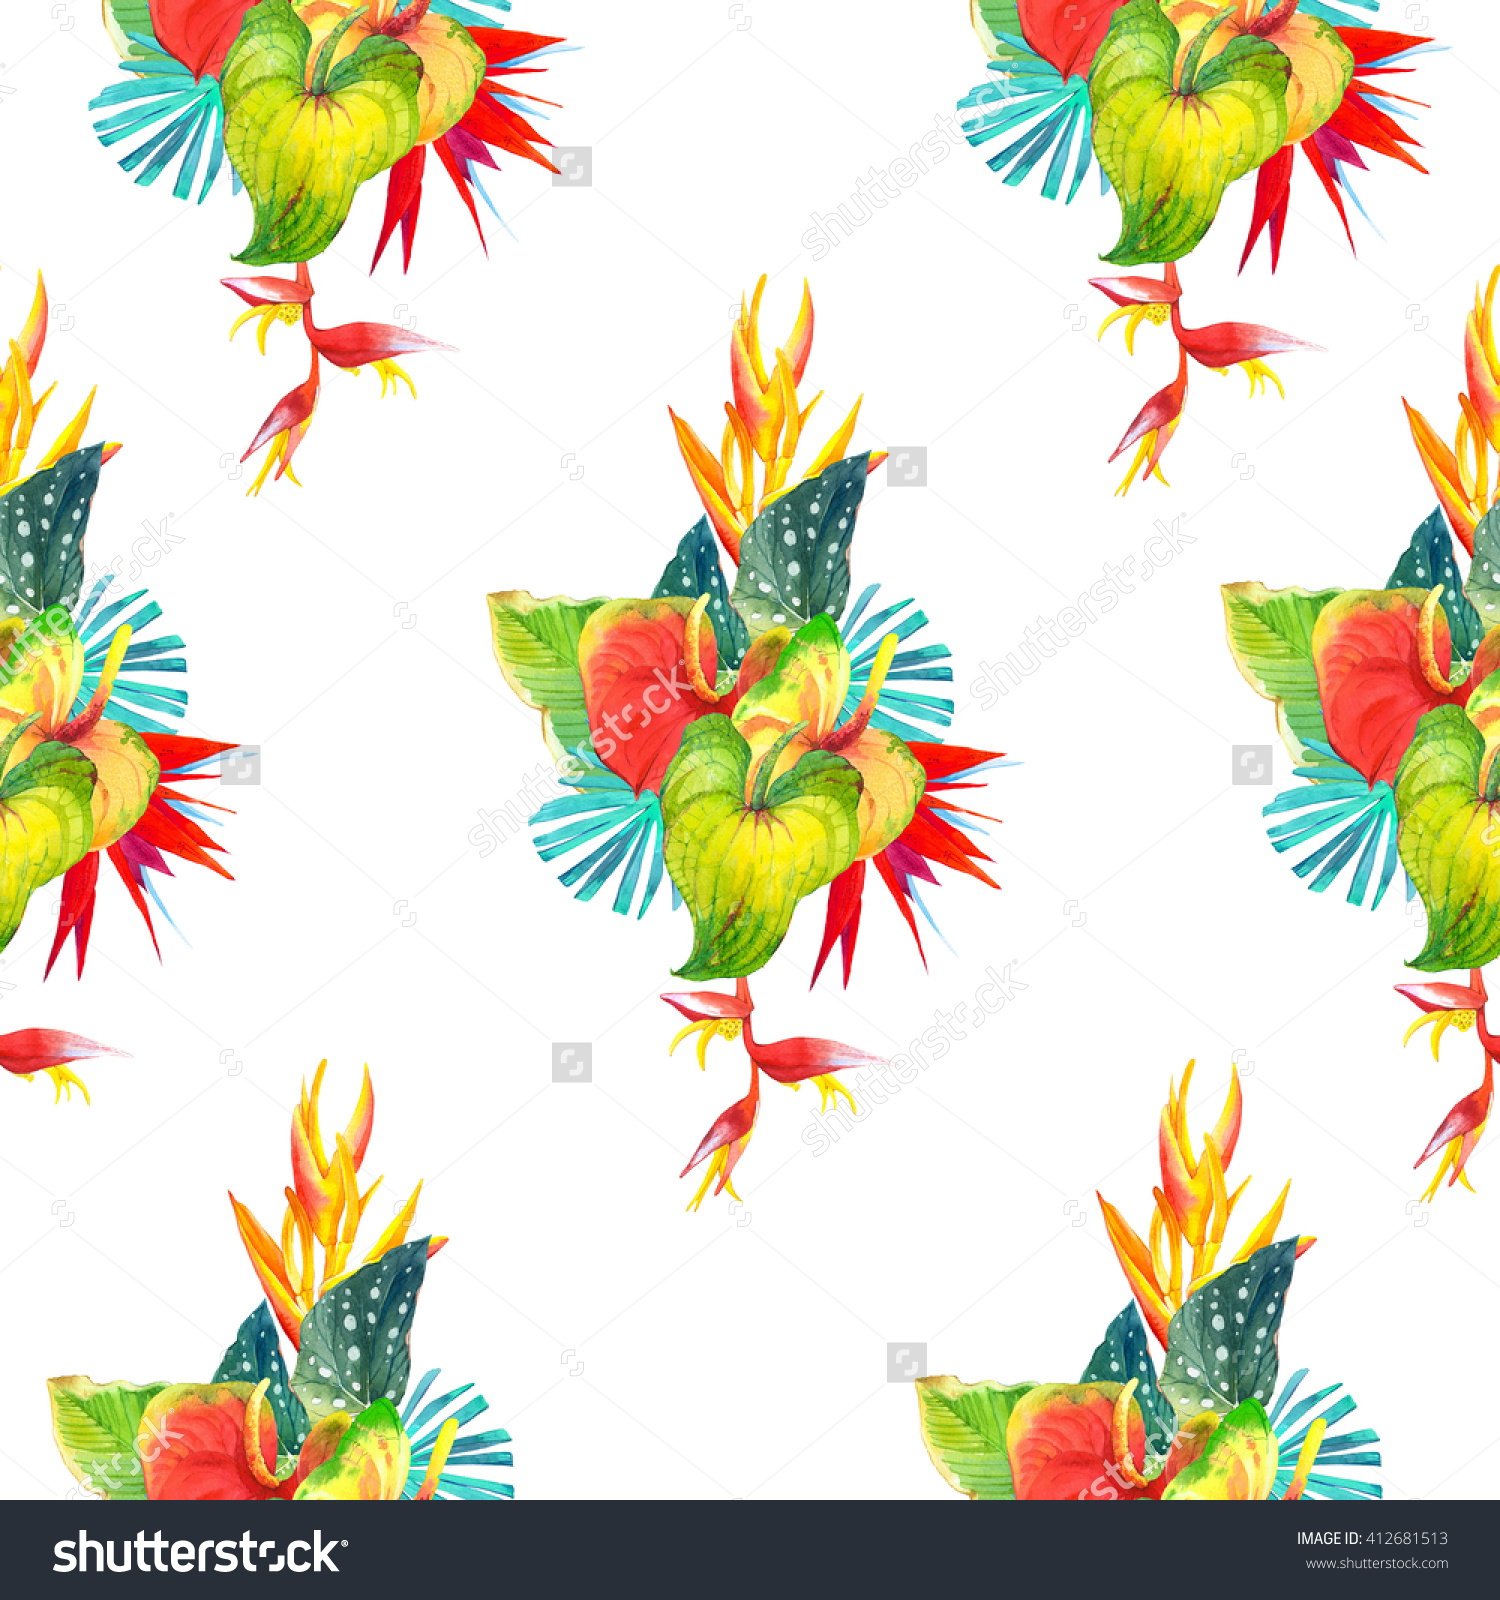 Seamless Background With Watercolor Tropical Flowers. Beautiful.